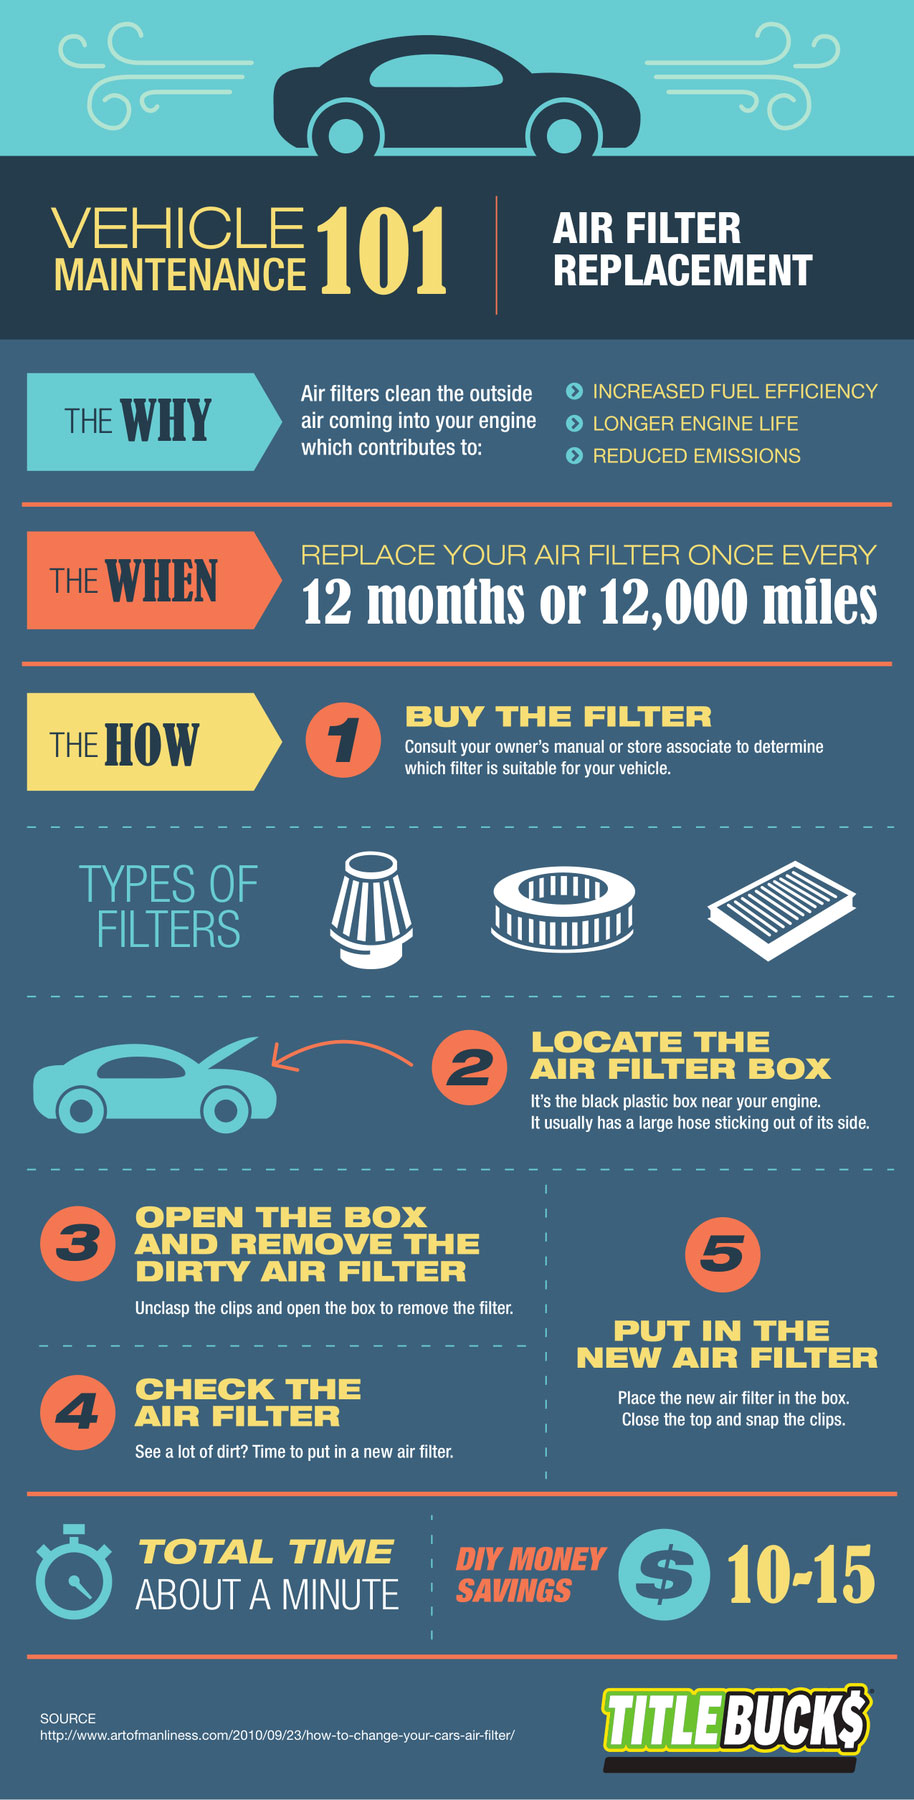 infographic showing details about vehicle maintenance